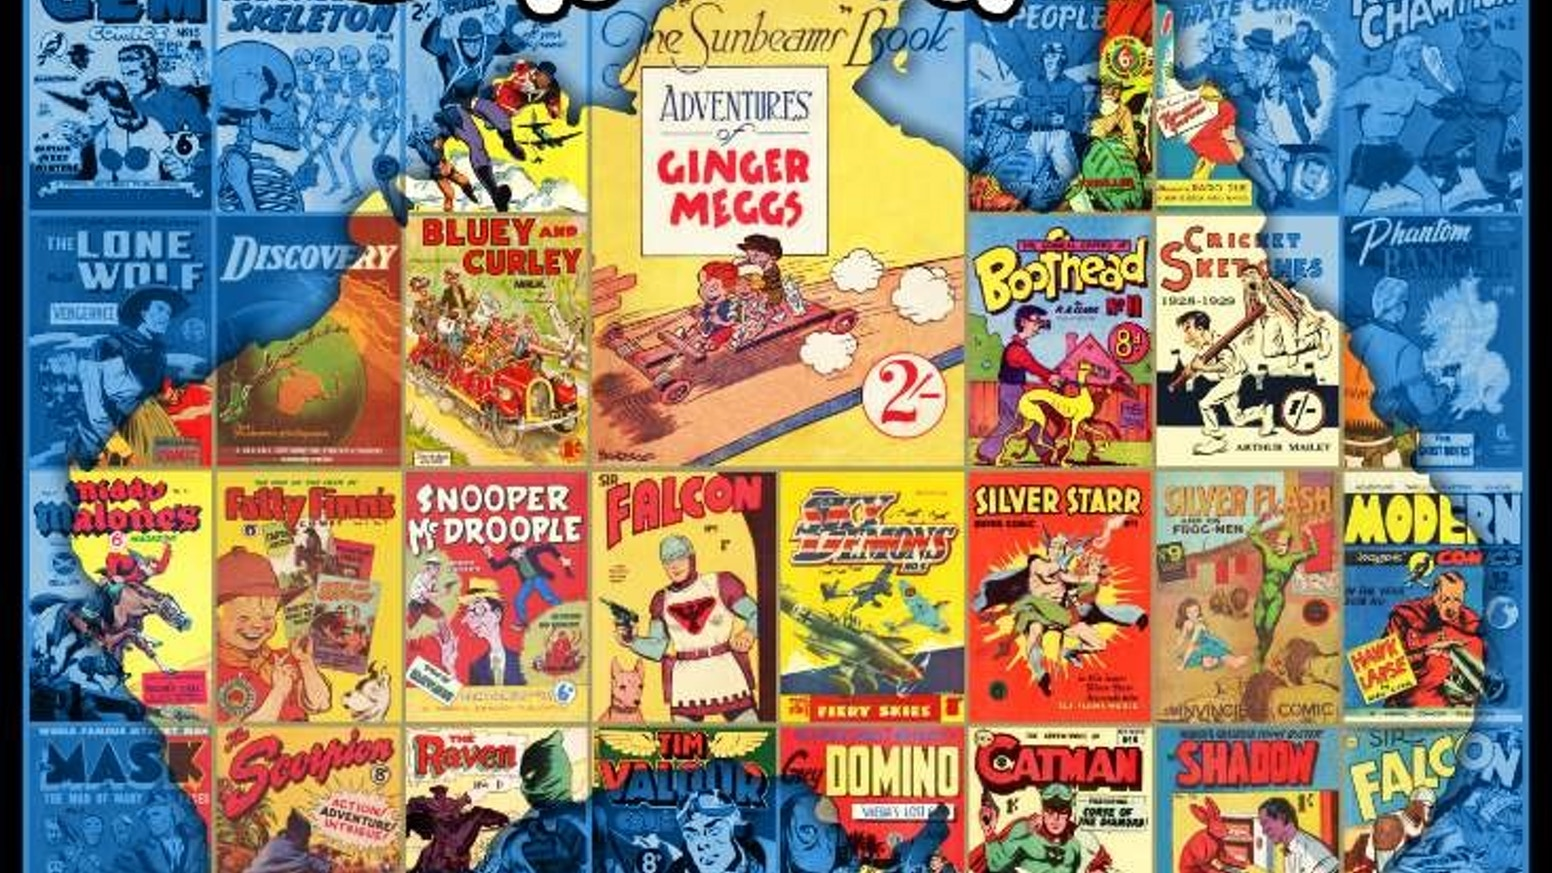 THE DEFINITIVE history of Australian comic books, from 1924 to 1965 (Please click on the blue strip)